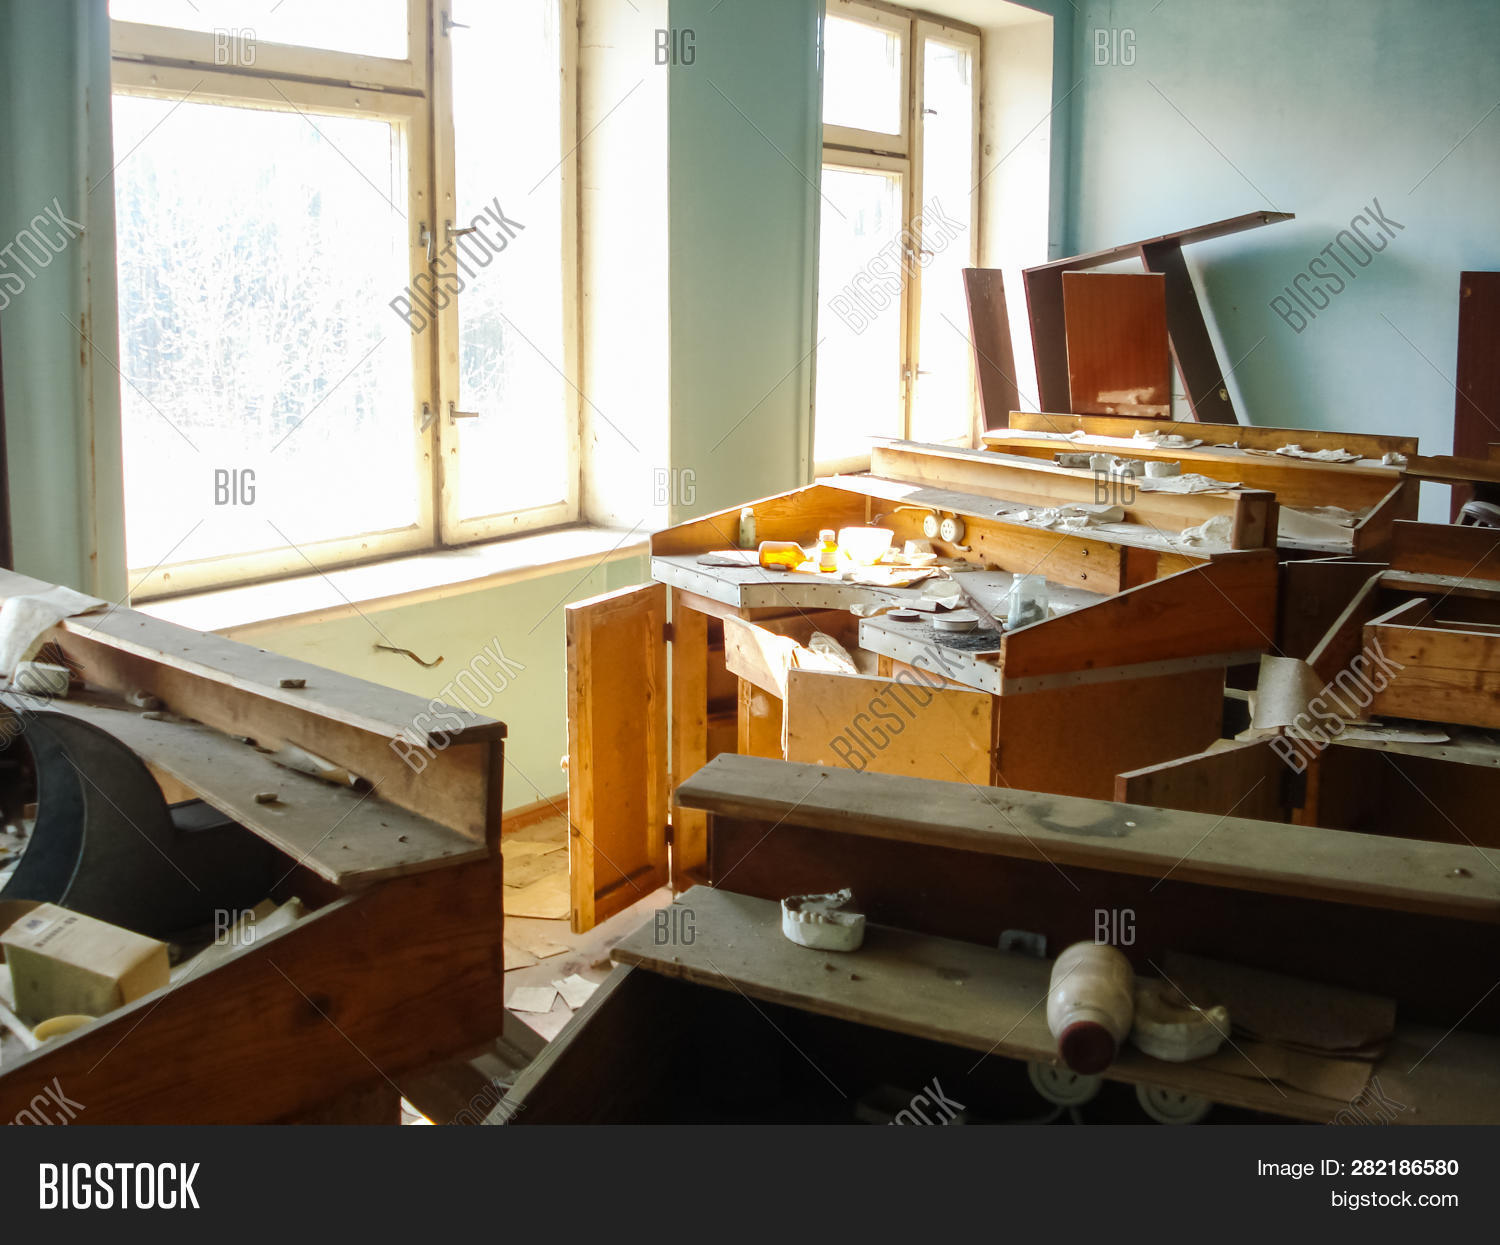 Abandoned Houses Image & Photo (Free Trial) | Bigstock